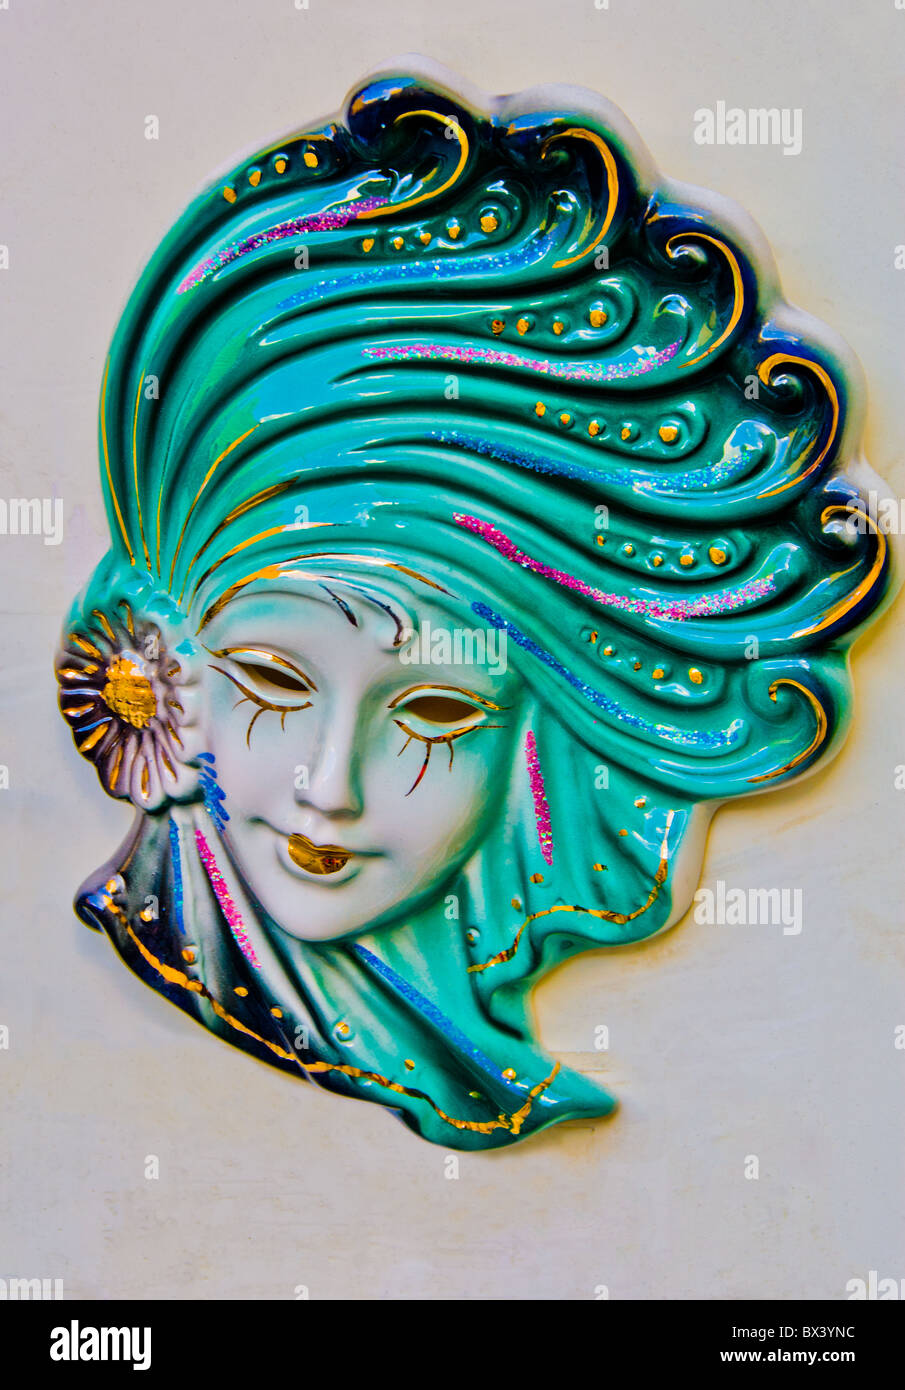 Mardi Gras ceramic wall display - Stock Image